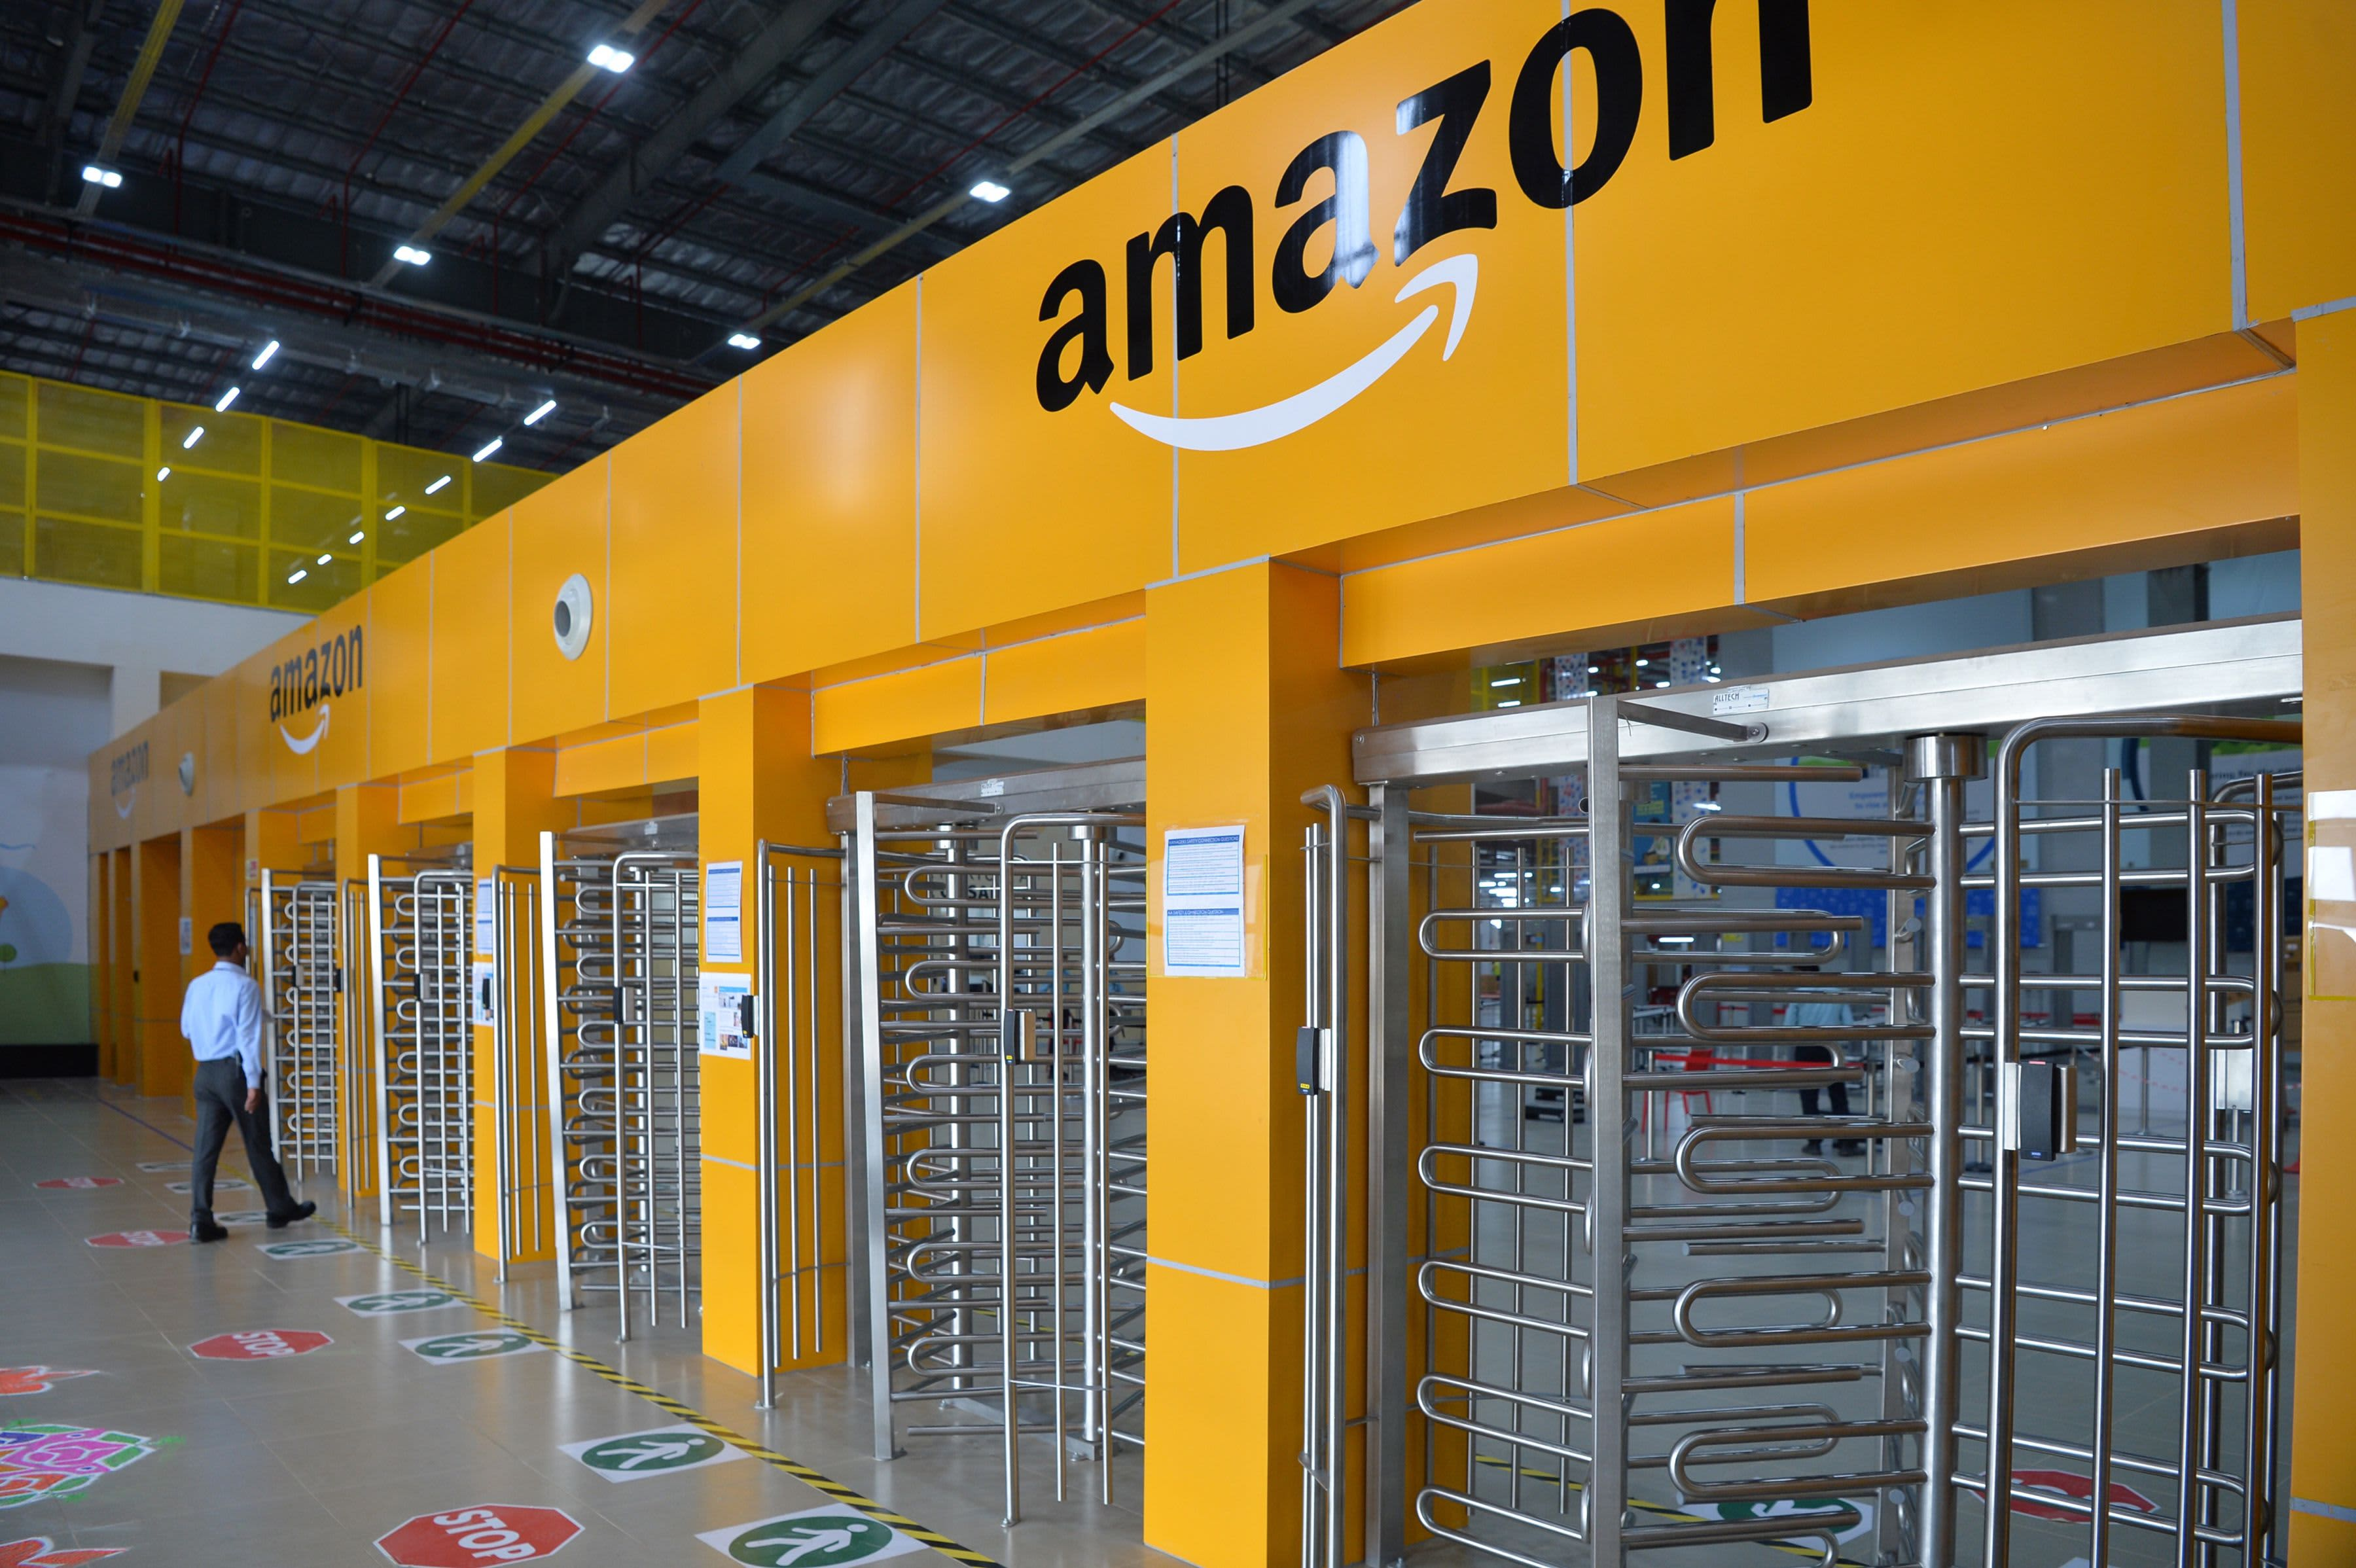 Amazon: How India's e-commerce law will affect the retailer